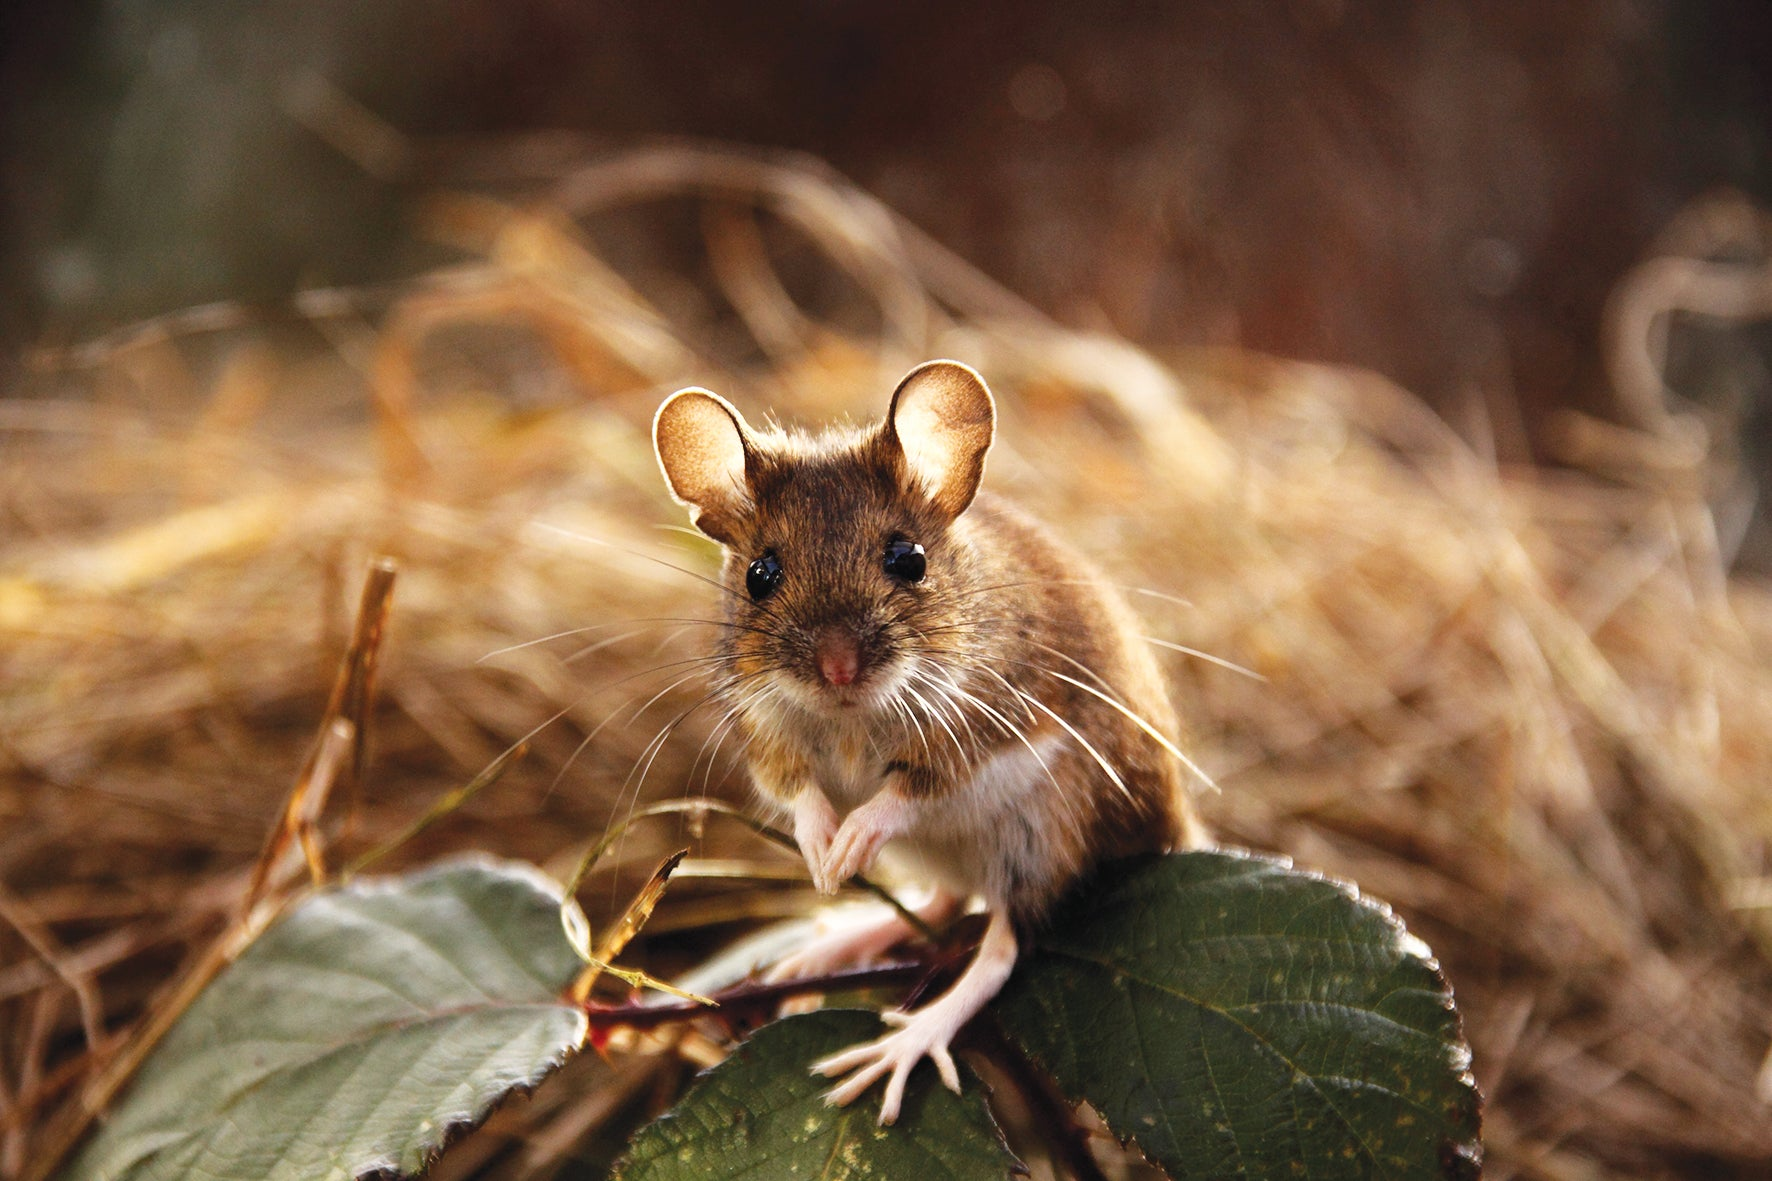 Winter is coming, and stubborn little field mice are beginning to take up residence in my house